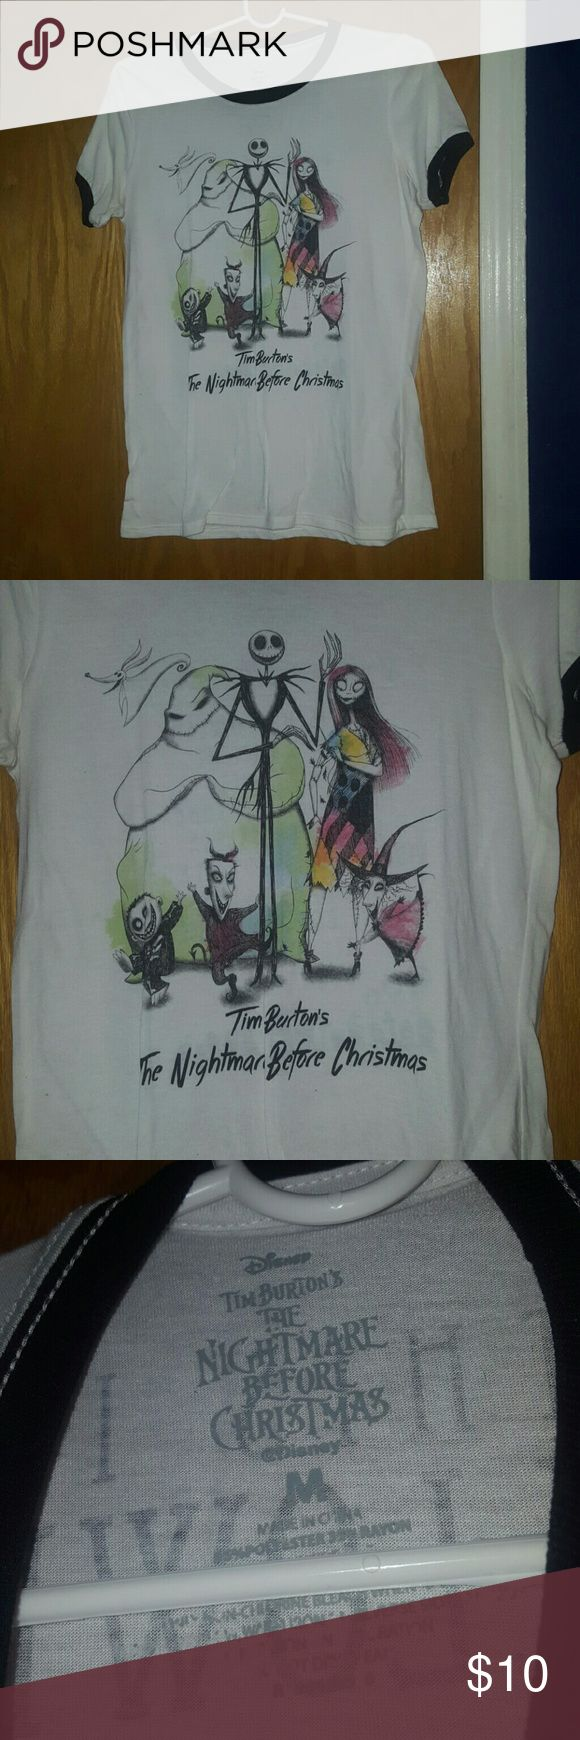 Nightmare before christmas shirt Selling a woman's nightmare before christmas  shirt size medium , worn a few times but still in good condition. Disney Tops Tees - Short Sleeve